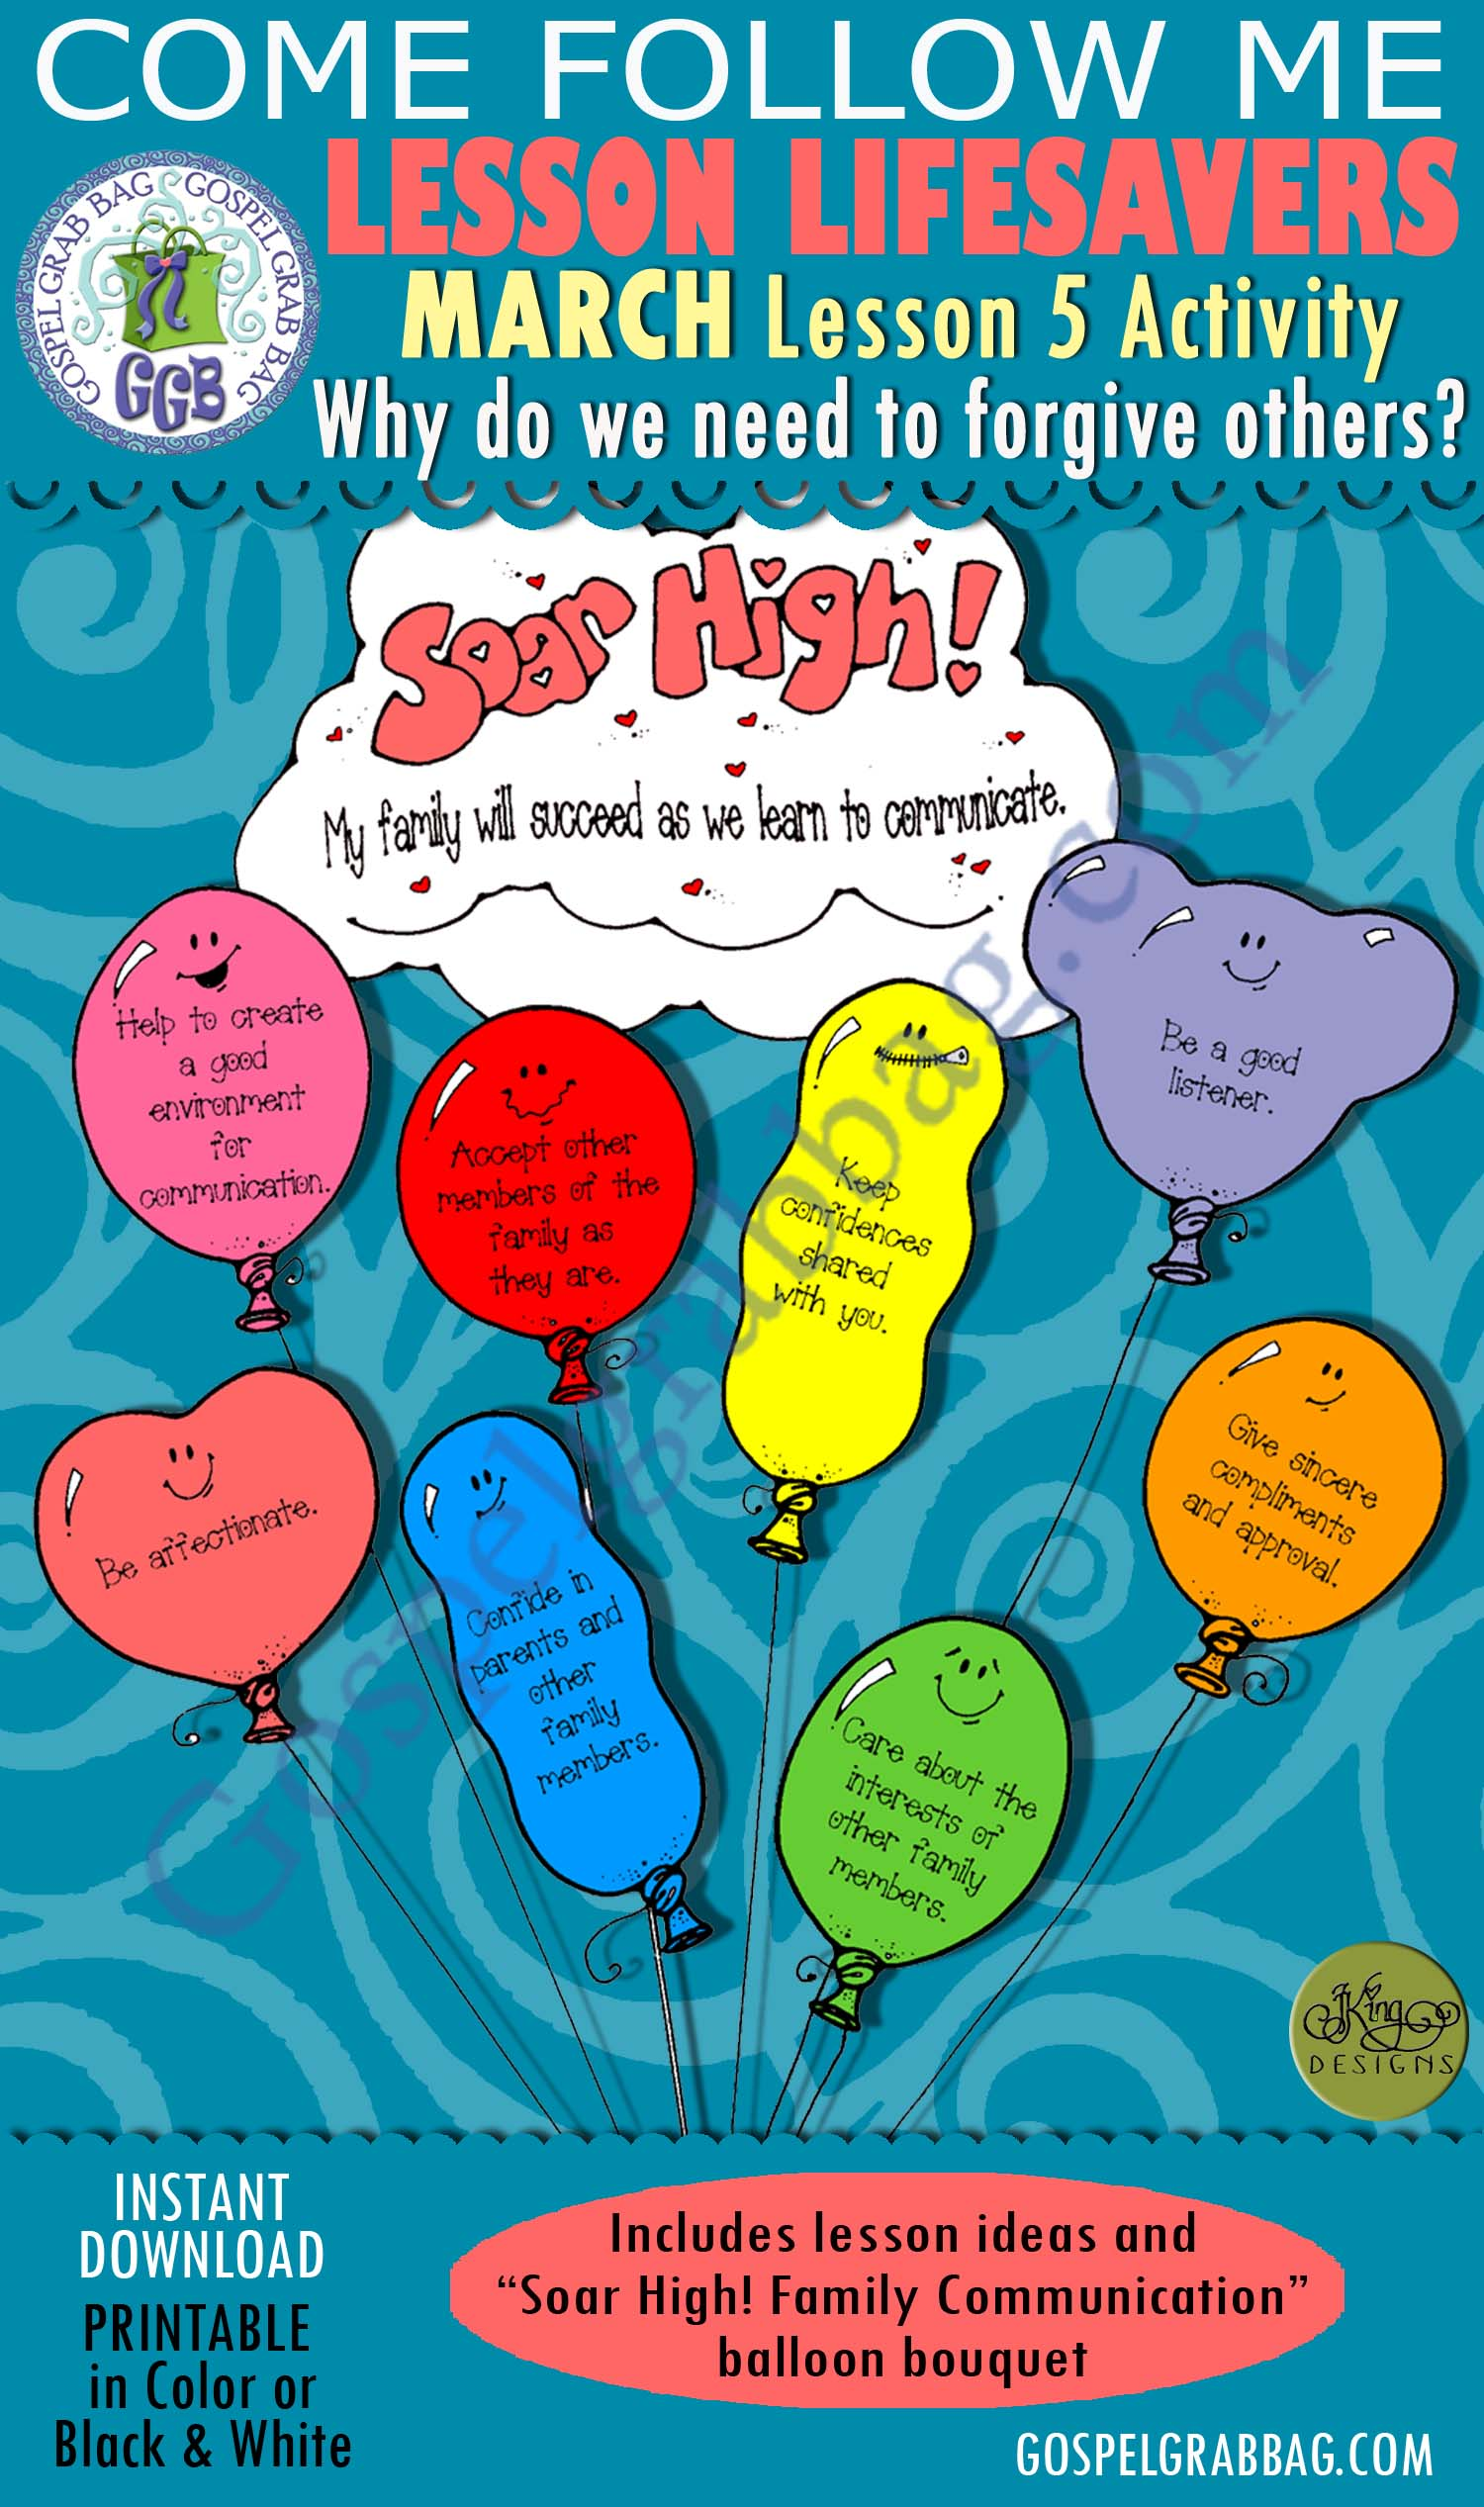 """$1.75 MARCH Lesson 5 Come Follow Me """"Why do we need to forgive others?"""" ACTIVITY: Soar High! Family Communication balloon bouquet, Young Women handouts, GospelGrabBag.com, LDS Printables"""